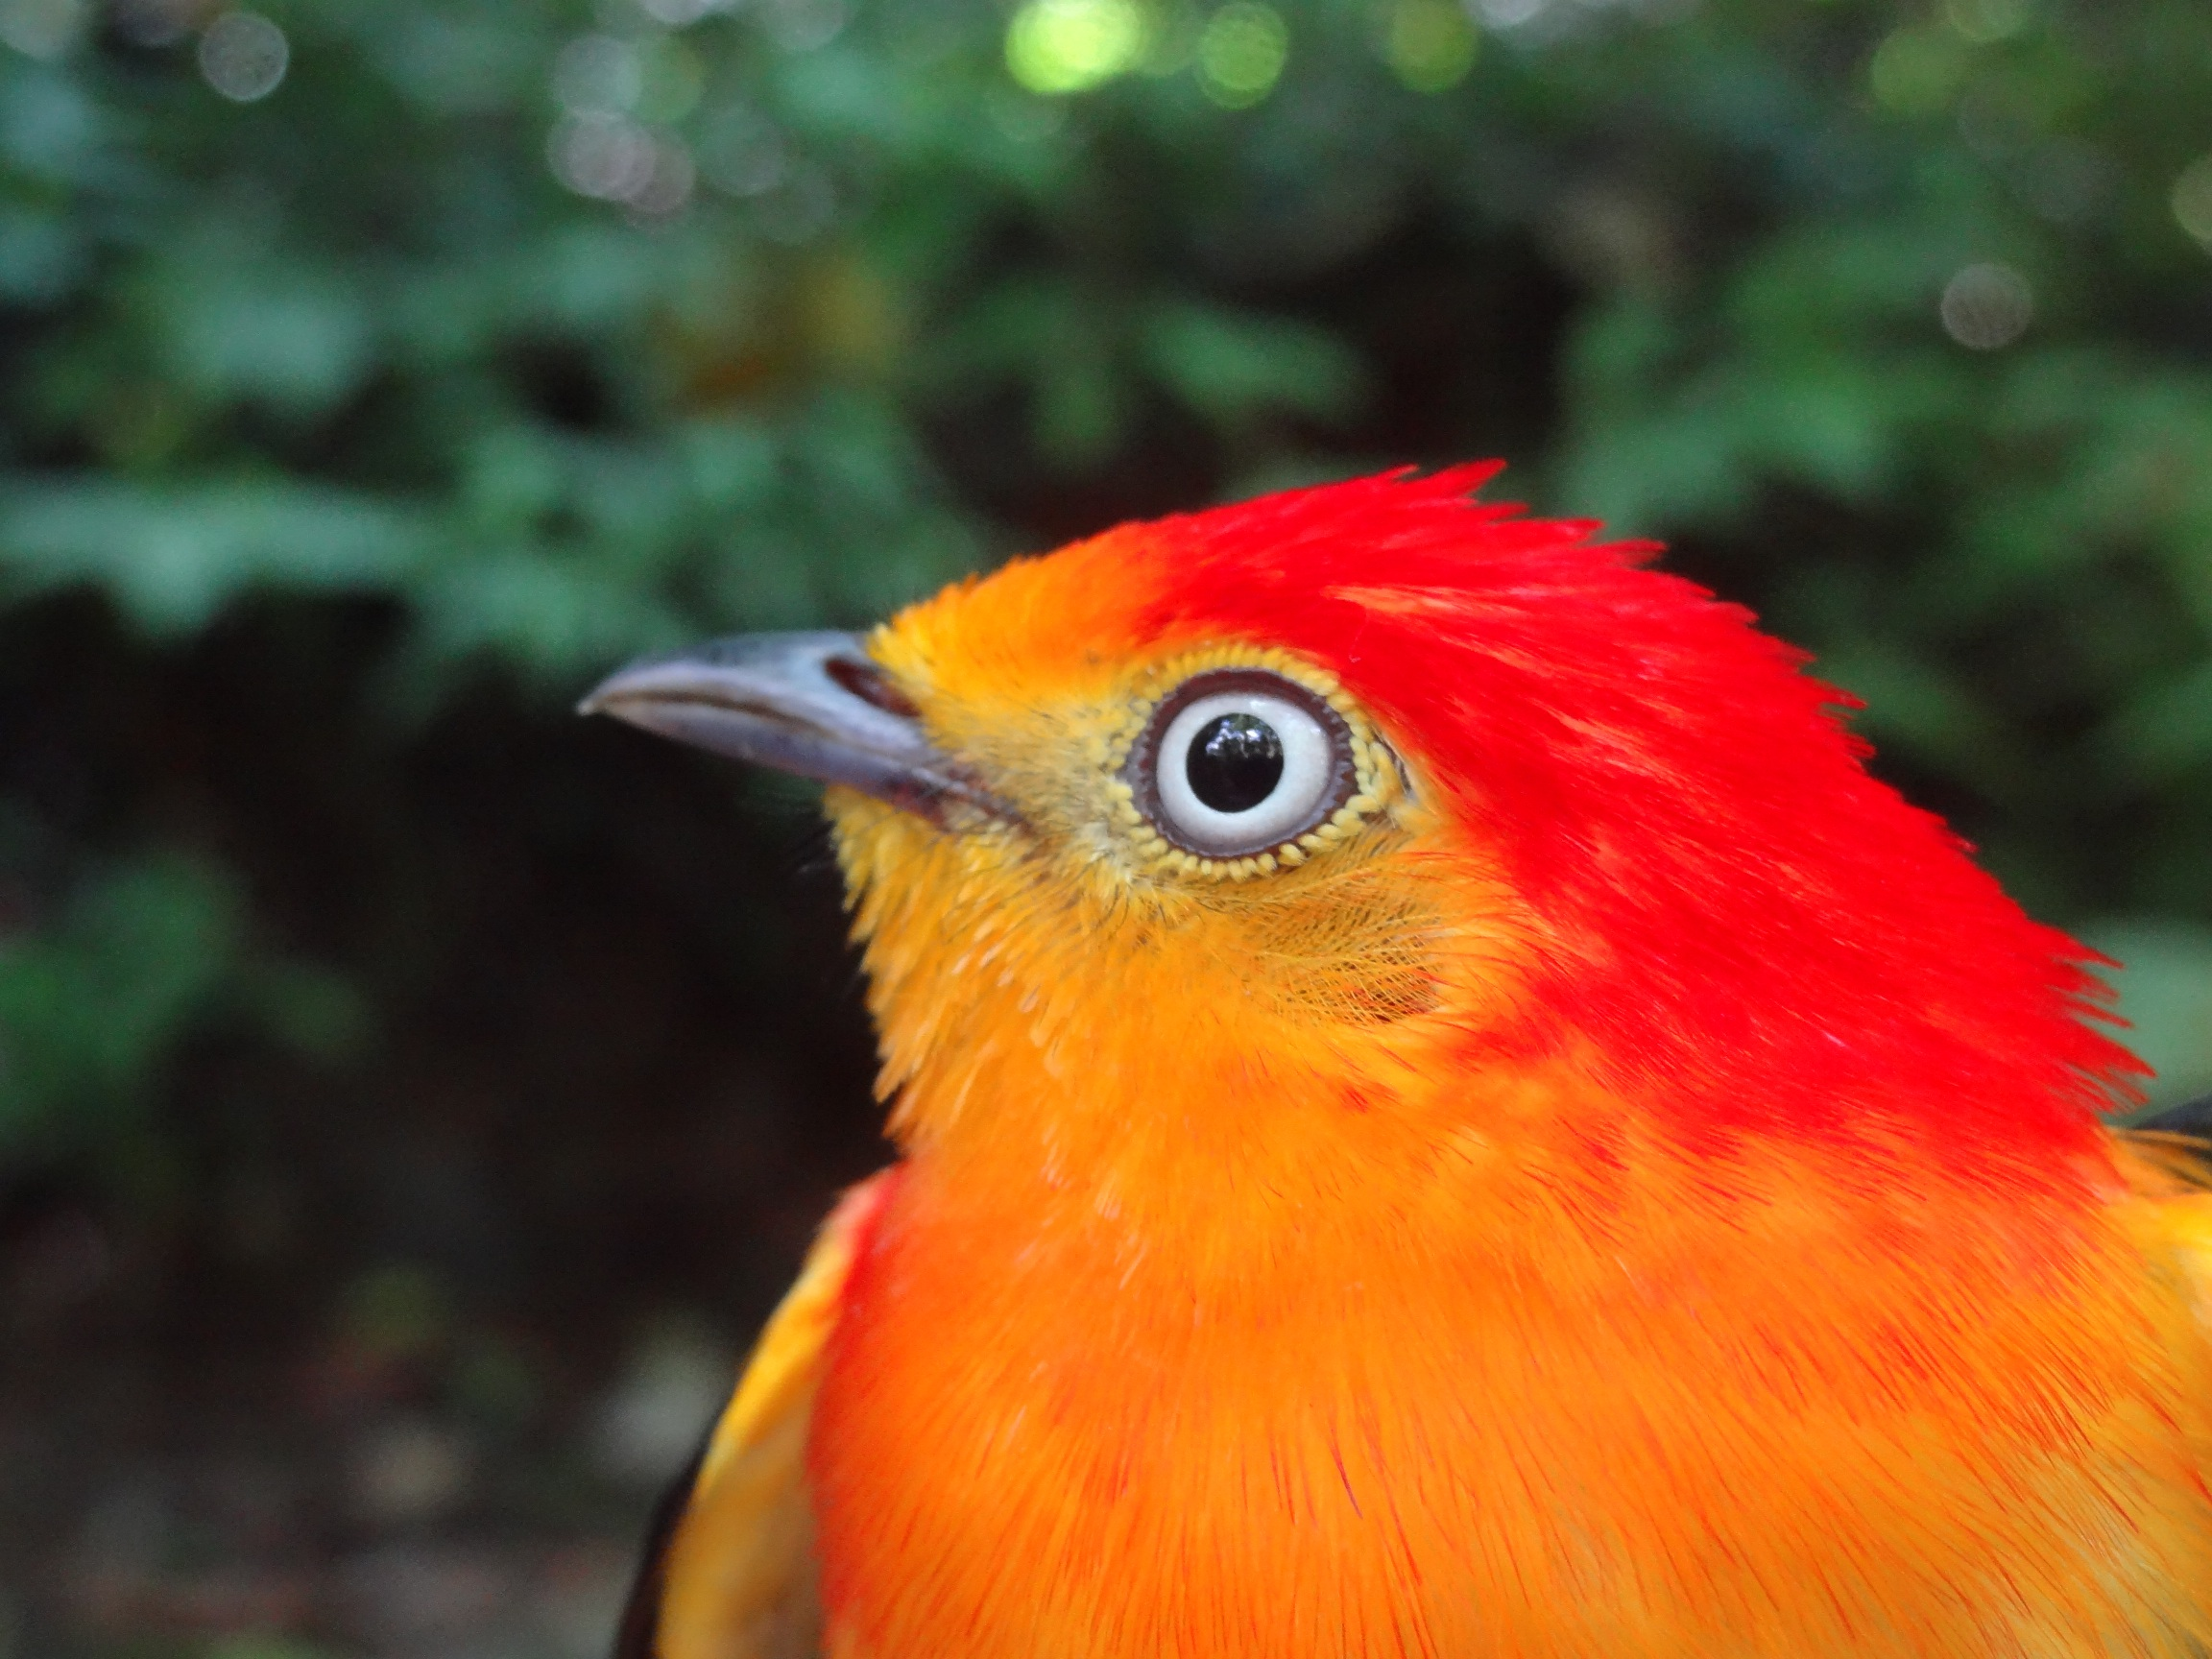 Band-tailed Manakin face